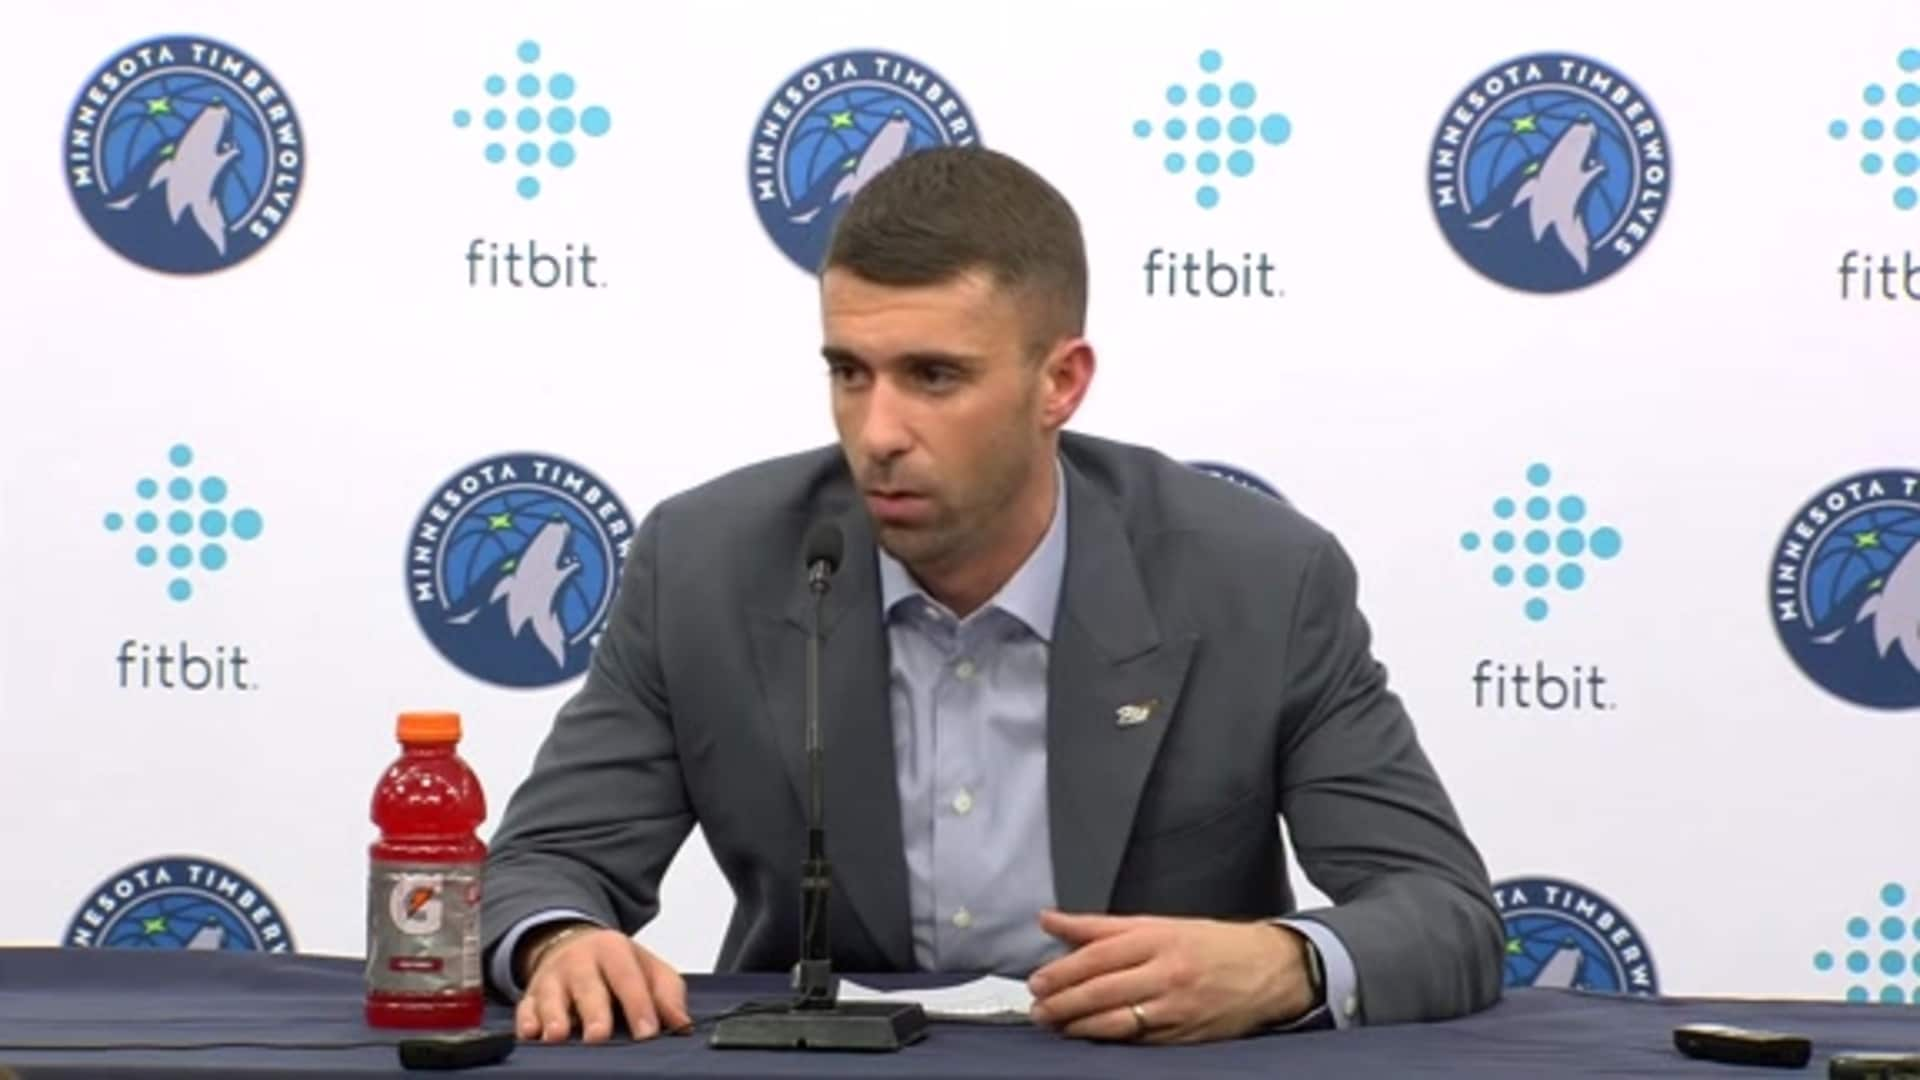 Timberwolves Coach Ryan Saunders After Loss To Clippers (12.13.19)